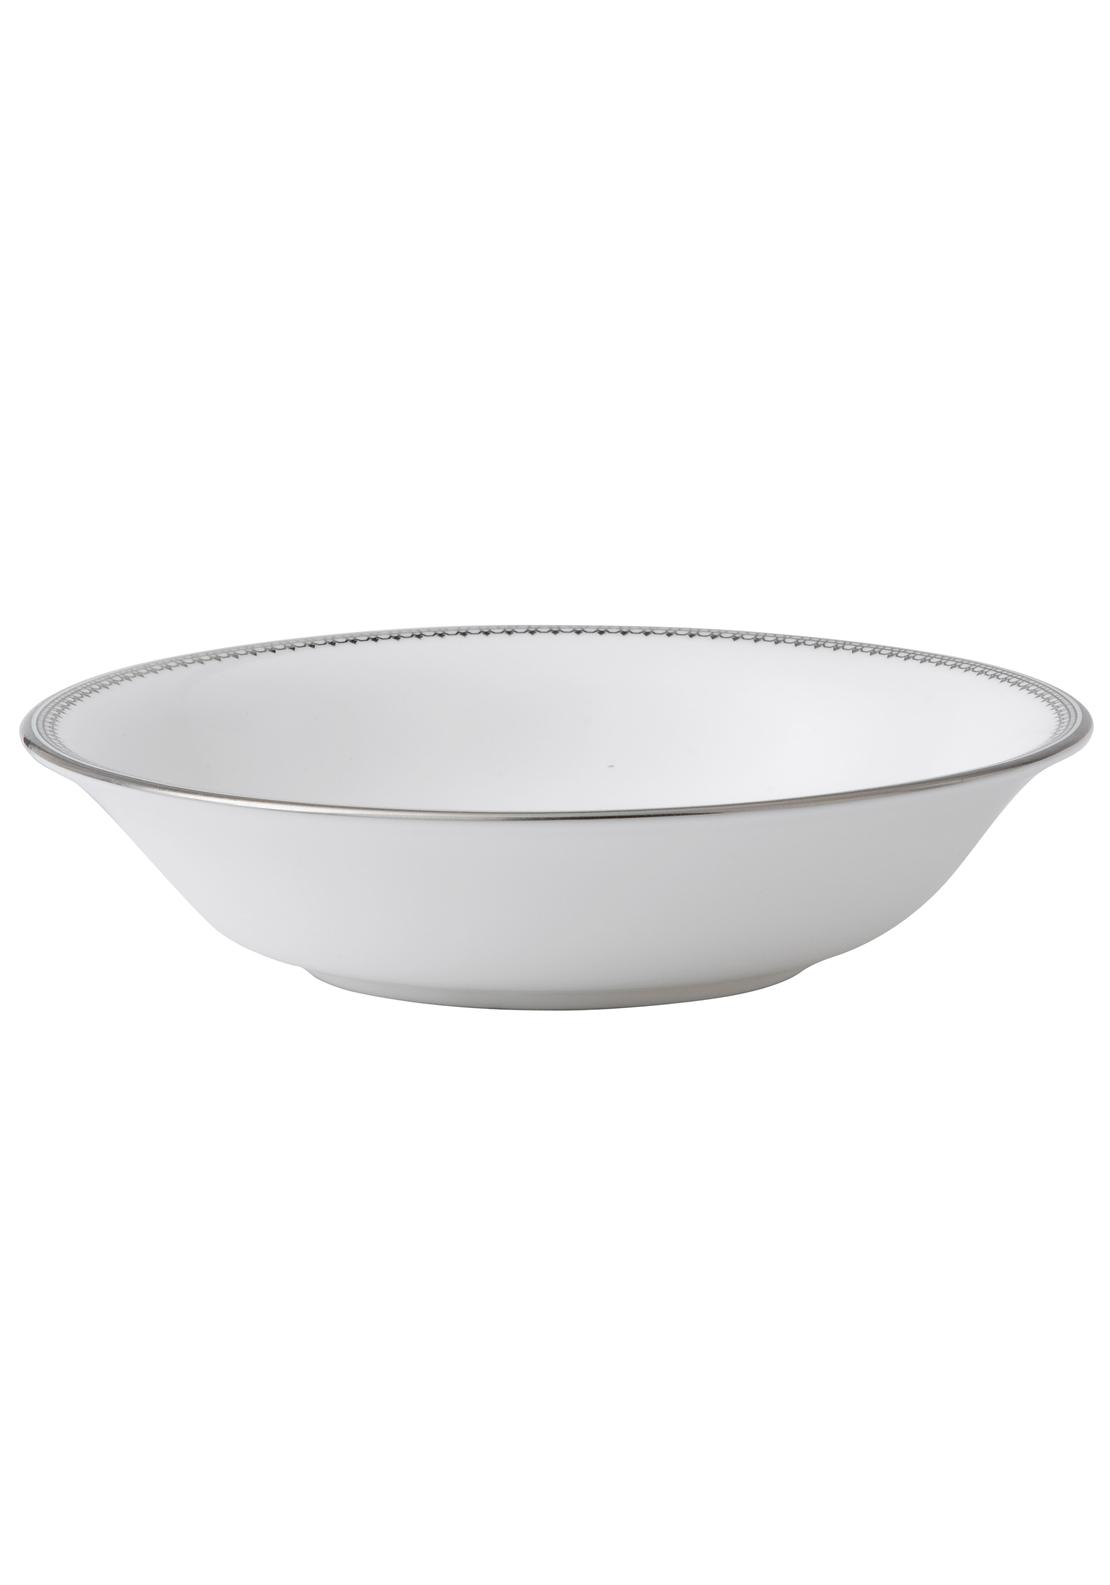 Vera Wang Wedgwood Lace Platinum Cereal Bowl